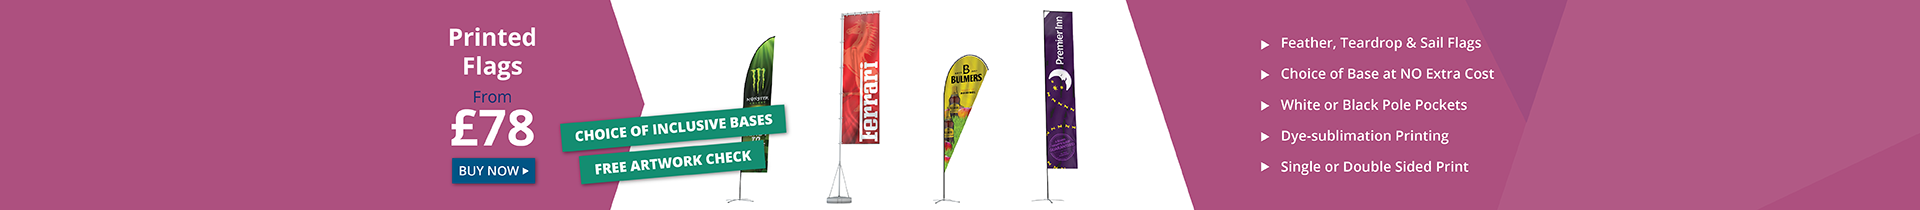 Printed Promotional Flags